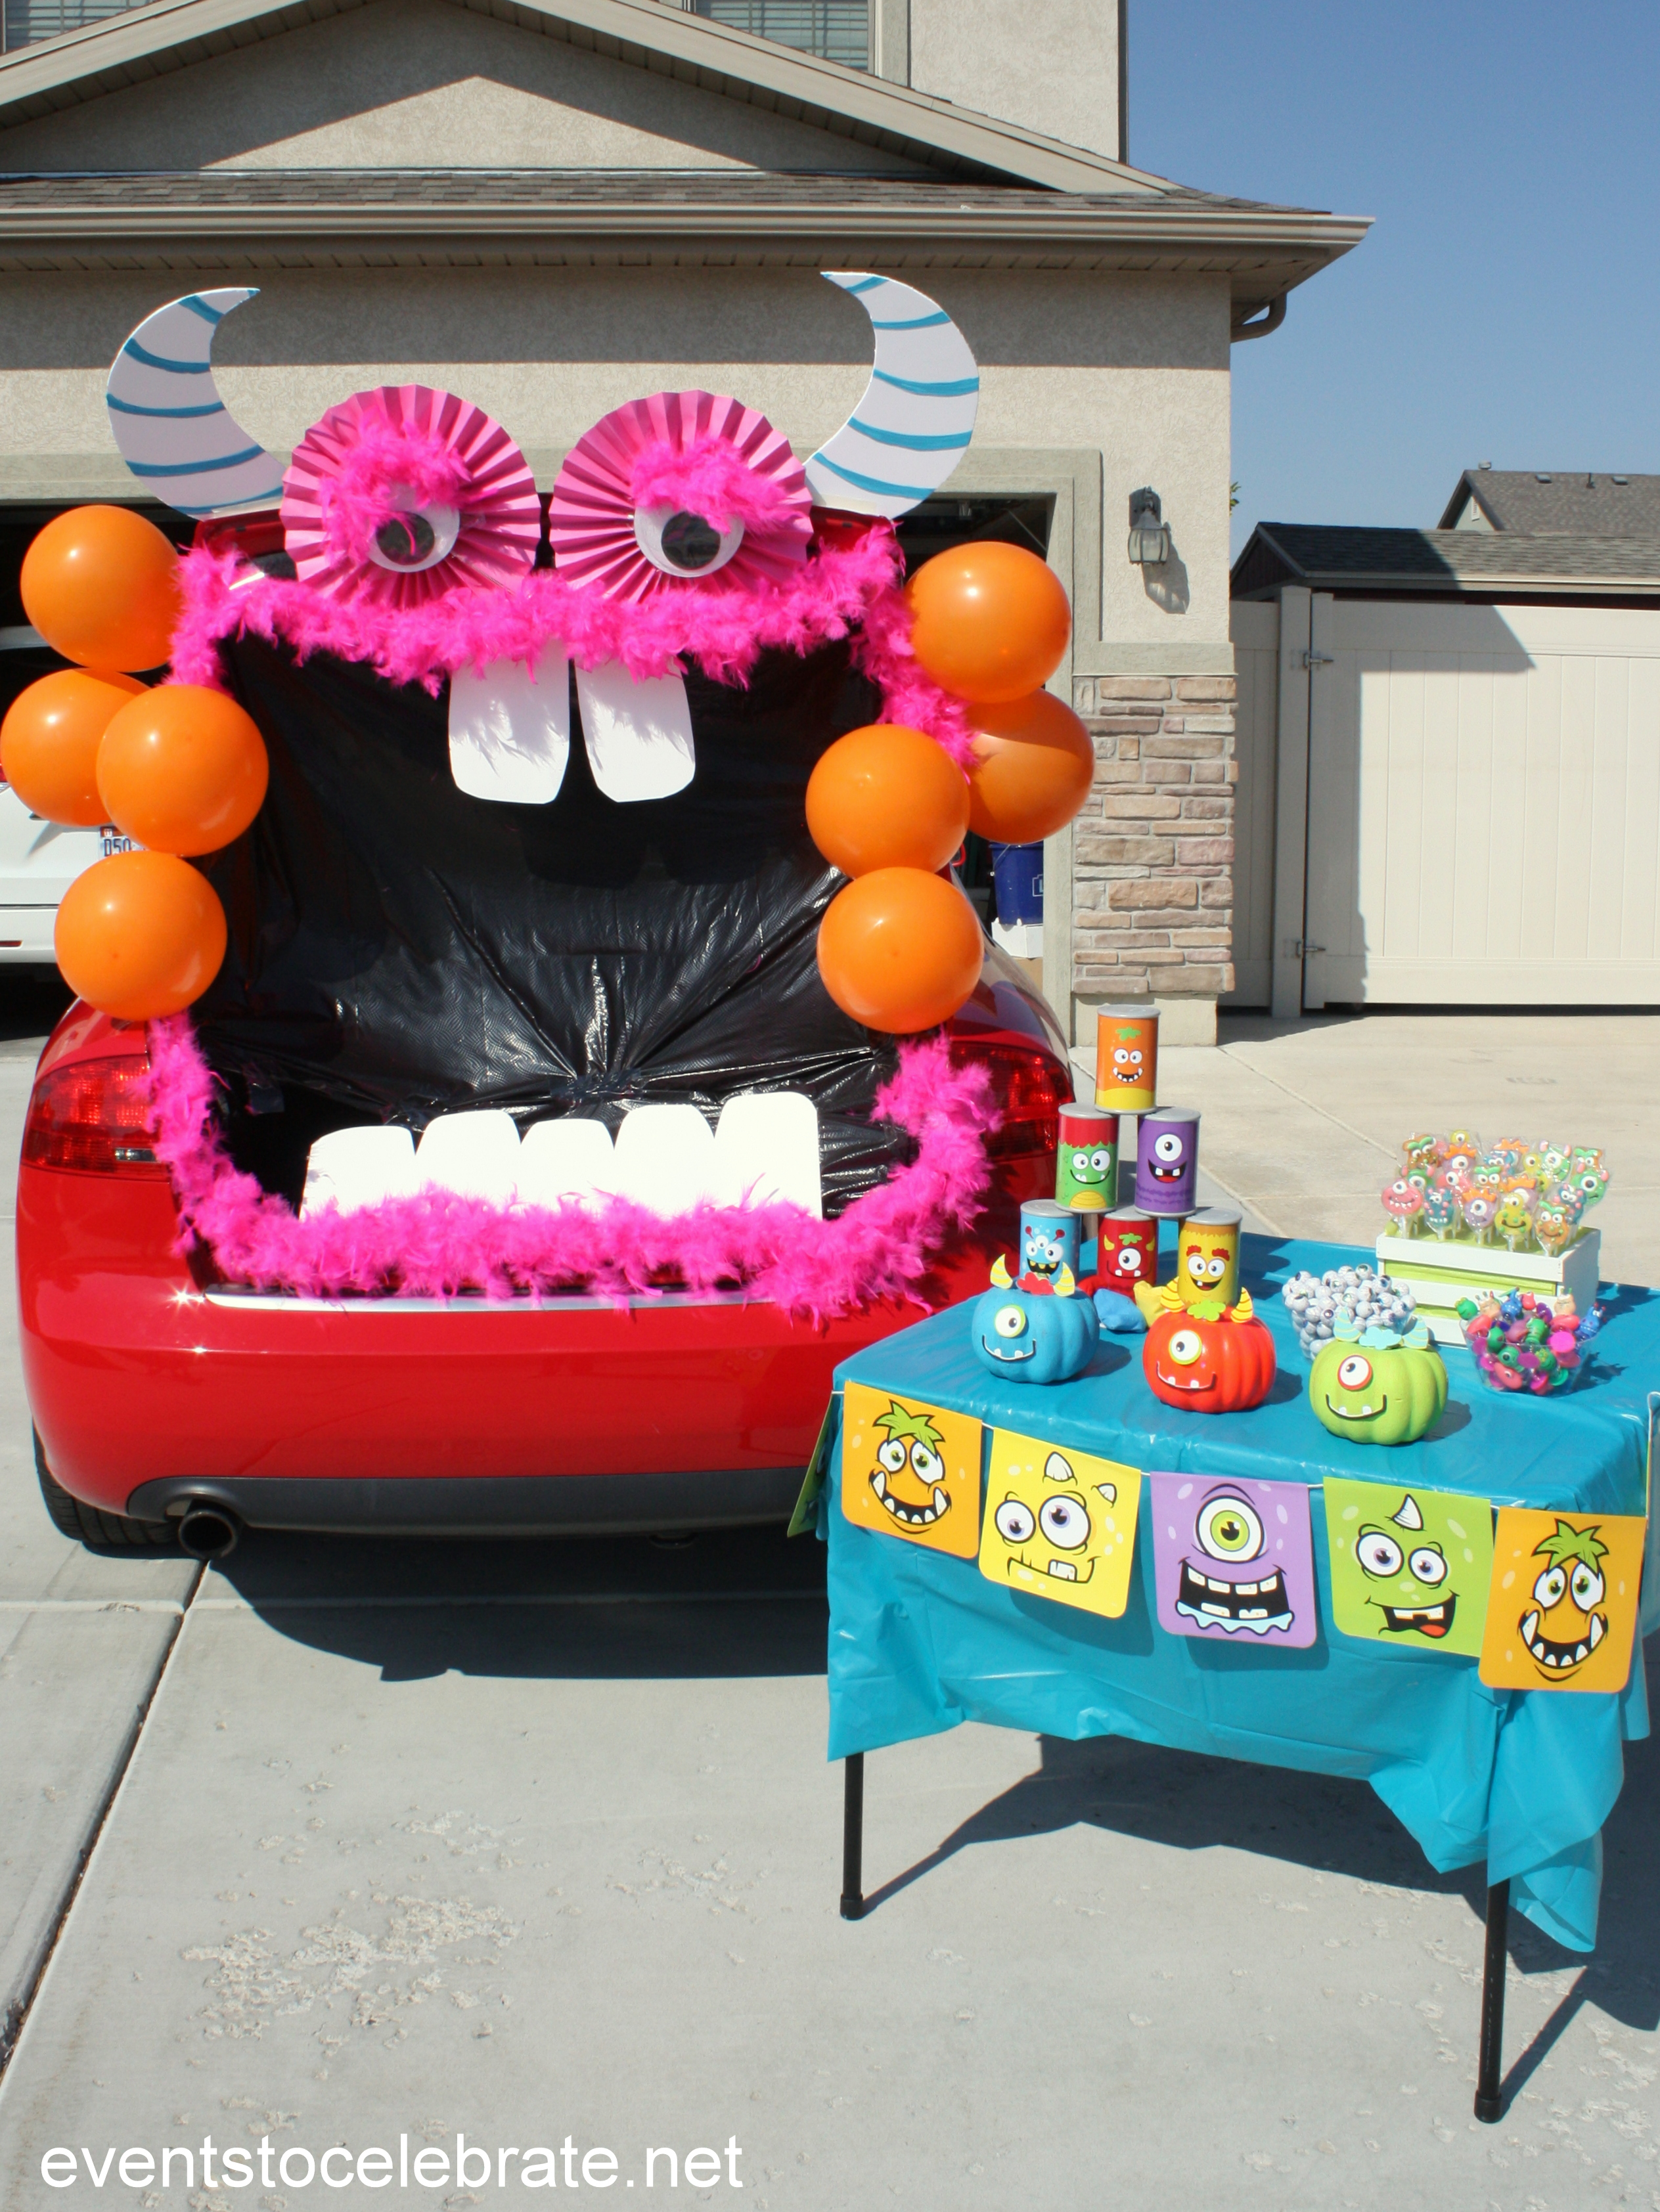 Trunk or Treat Monster - easy to assemble in just a few steps! Youu0027 & Trunk Or Treat Monster - events to CELEBRATE!